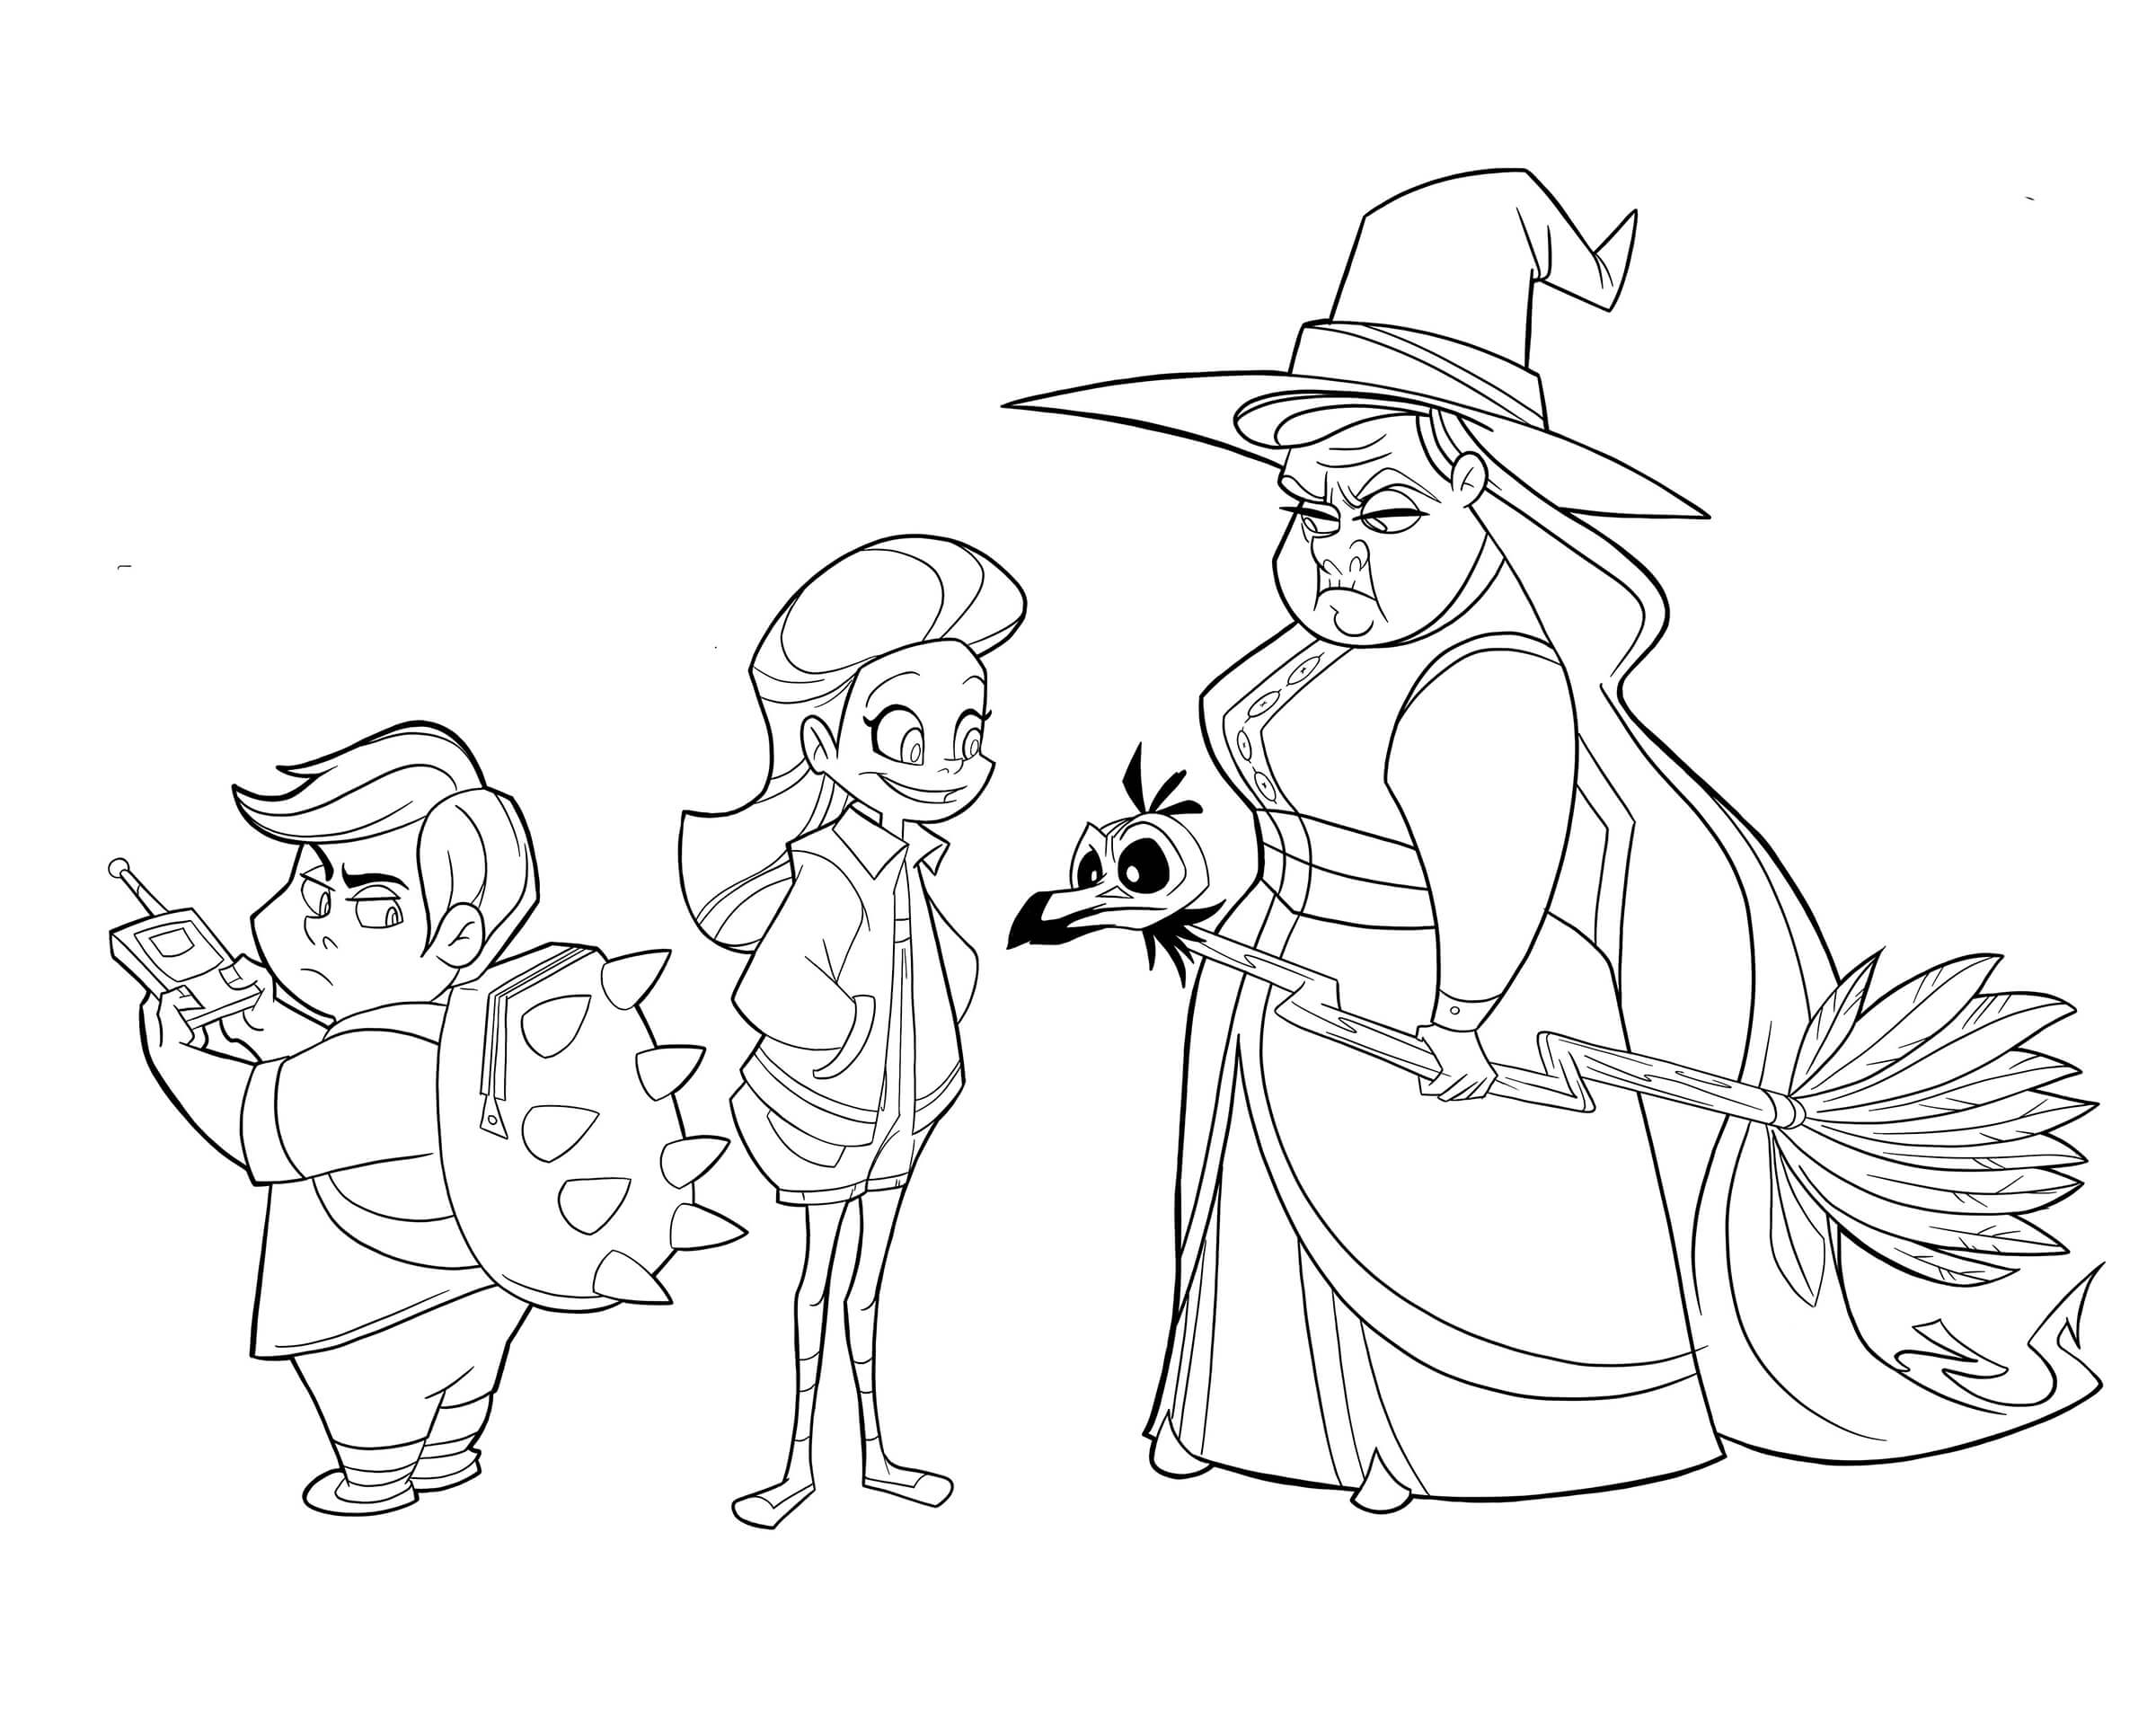 A digital drawing of a cartoonish witch and two children